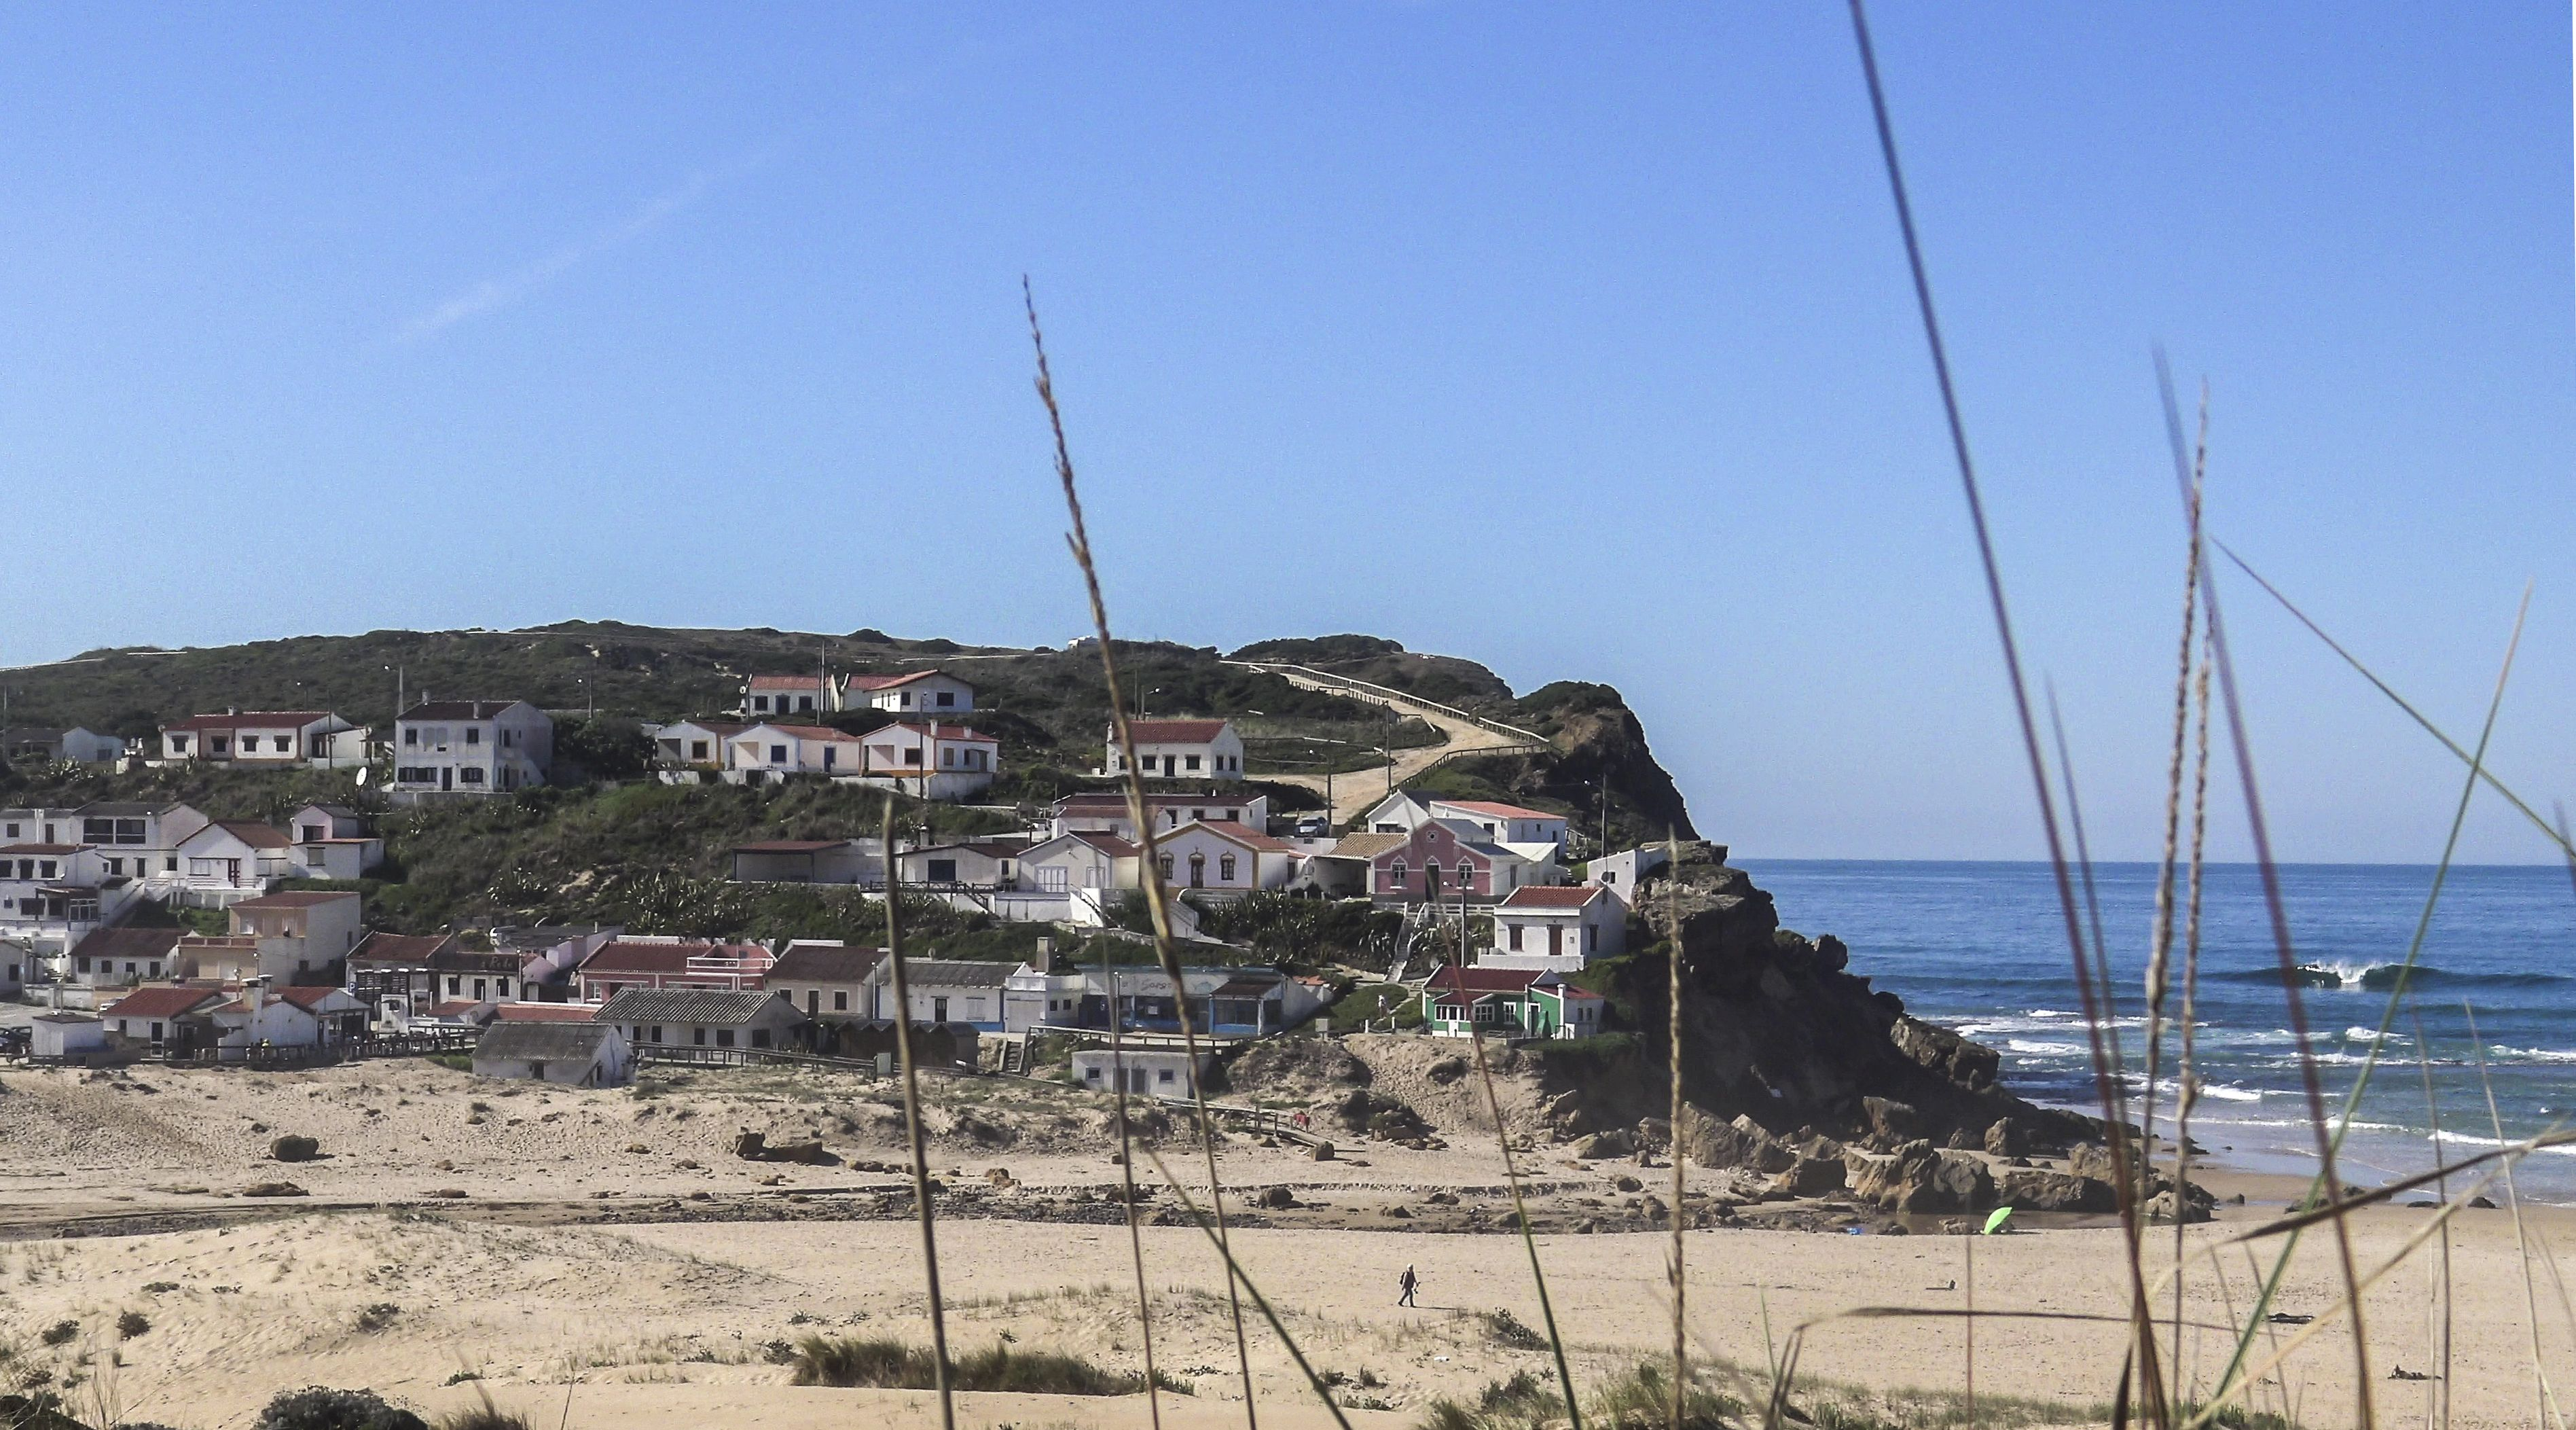 Just ten minutes away from Aljezur lies the sandy beach, Praia do Monte Clérigo, set in the low-lying hilly landscape of the Algarve region. On the way here you should definitely stop at the viewing platform. Algarve - Portugal